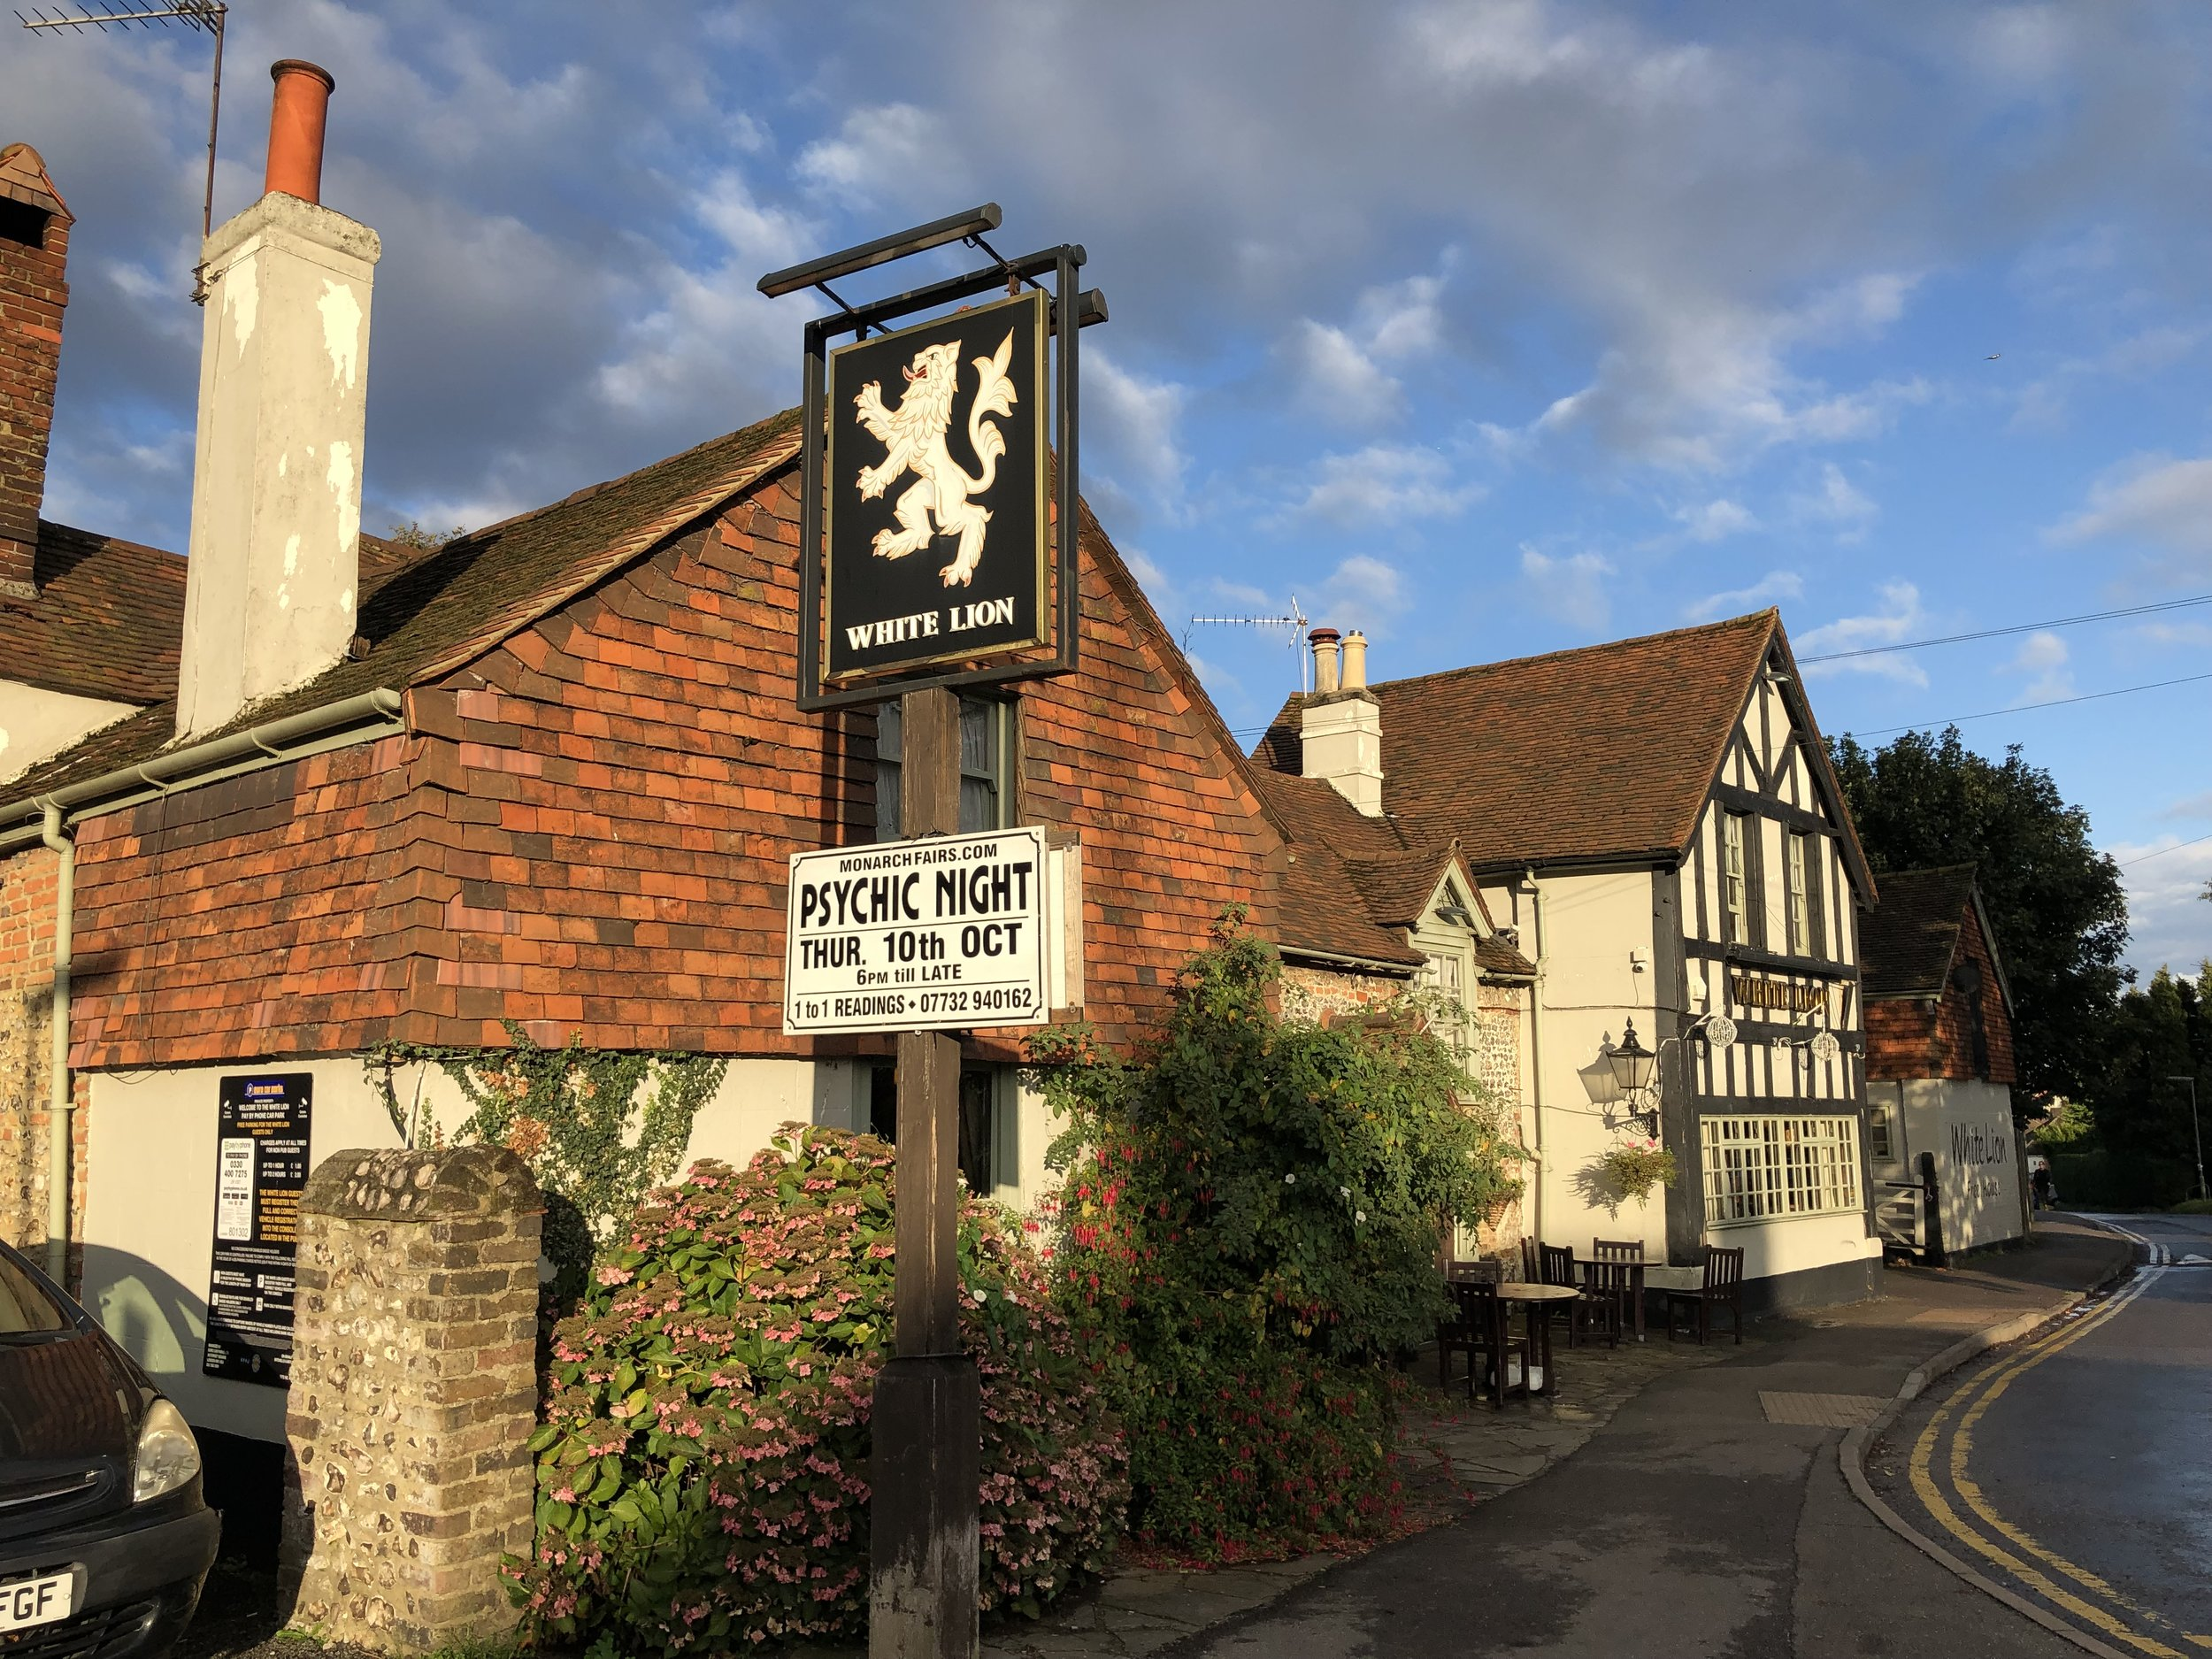 The local pub in Warlingham.